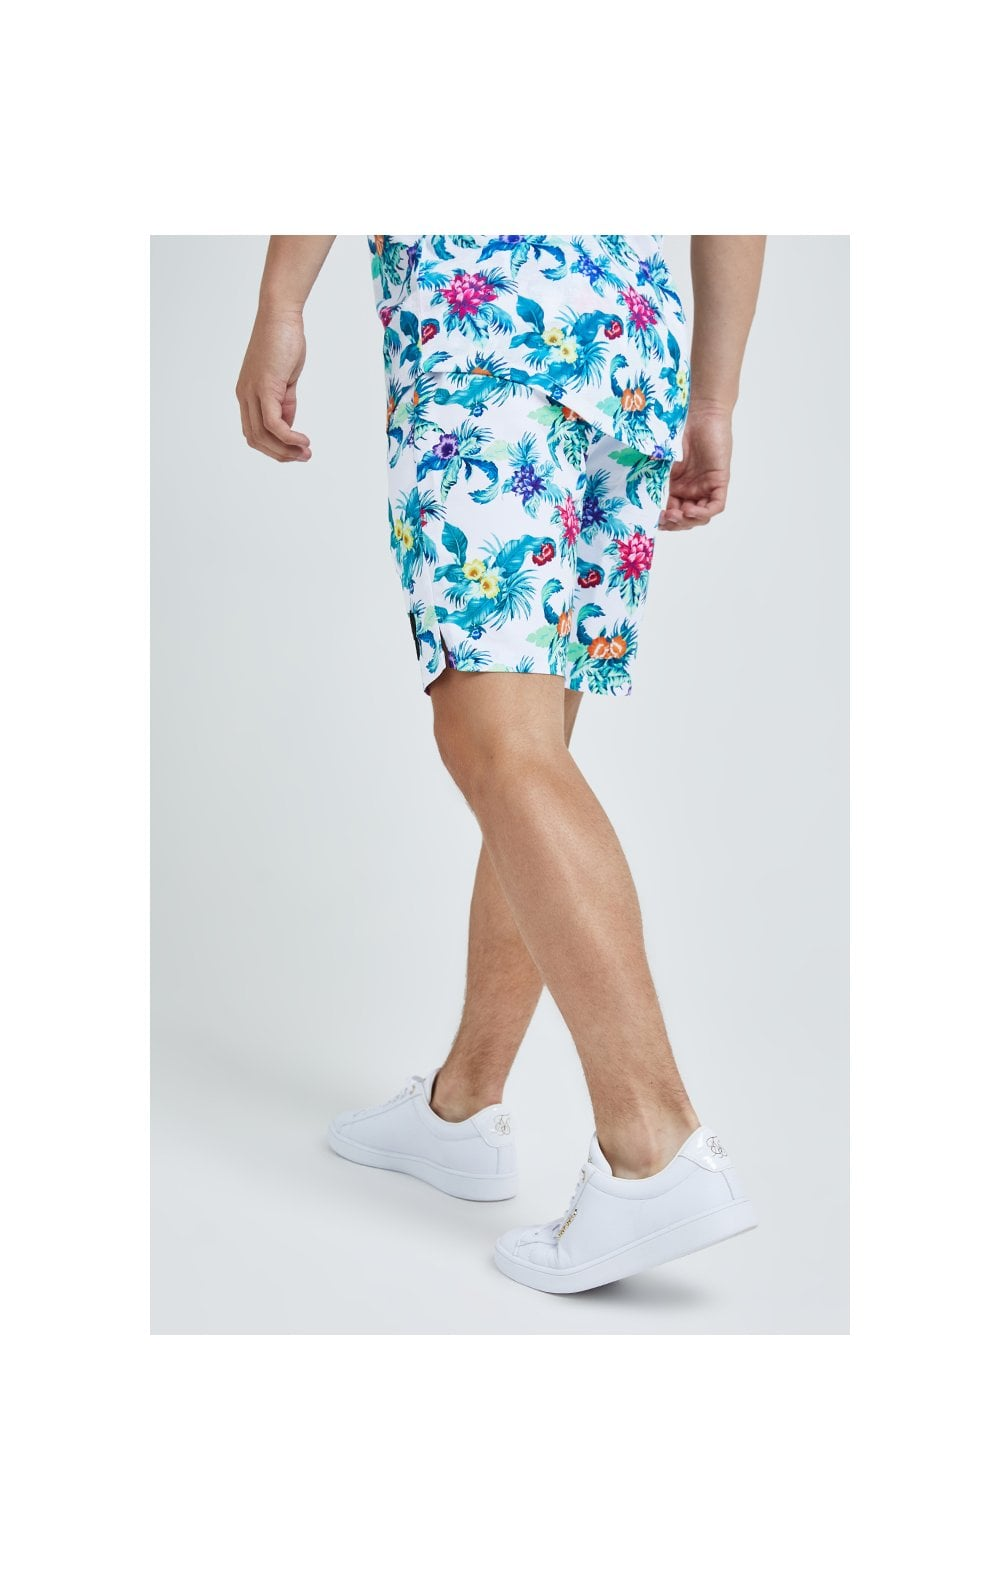 Illusive London Swim Shorts - White & Floral (3)